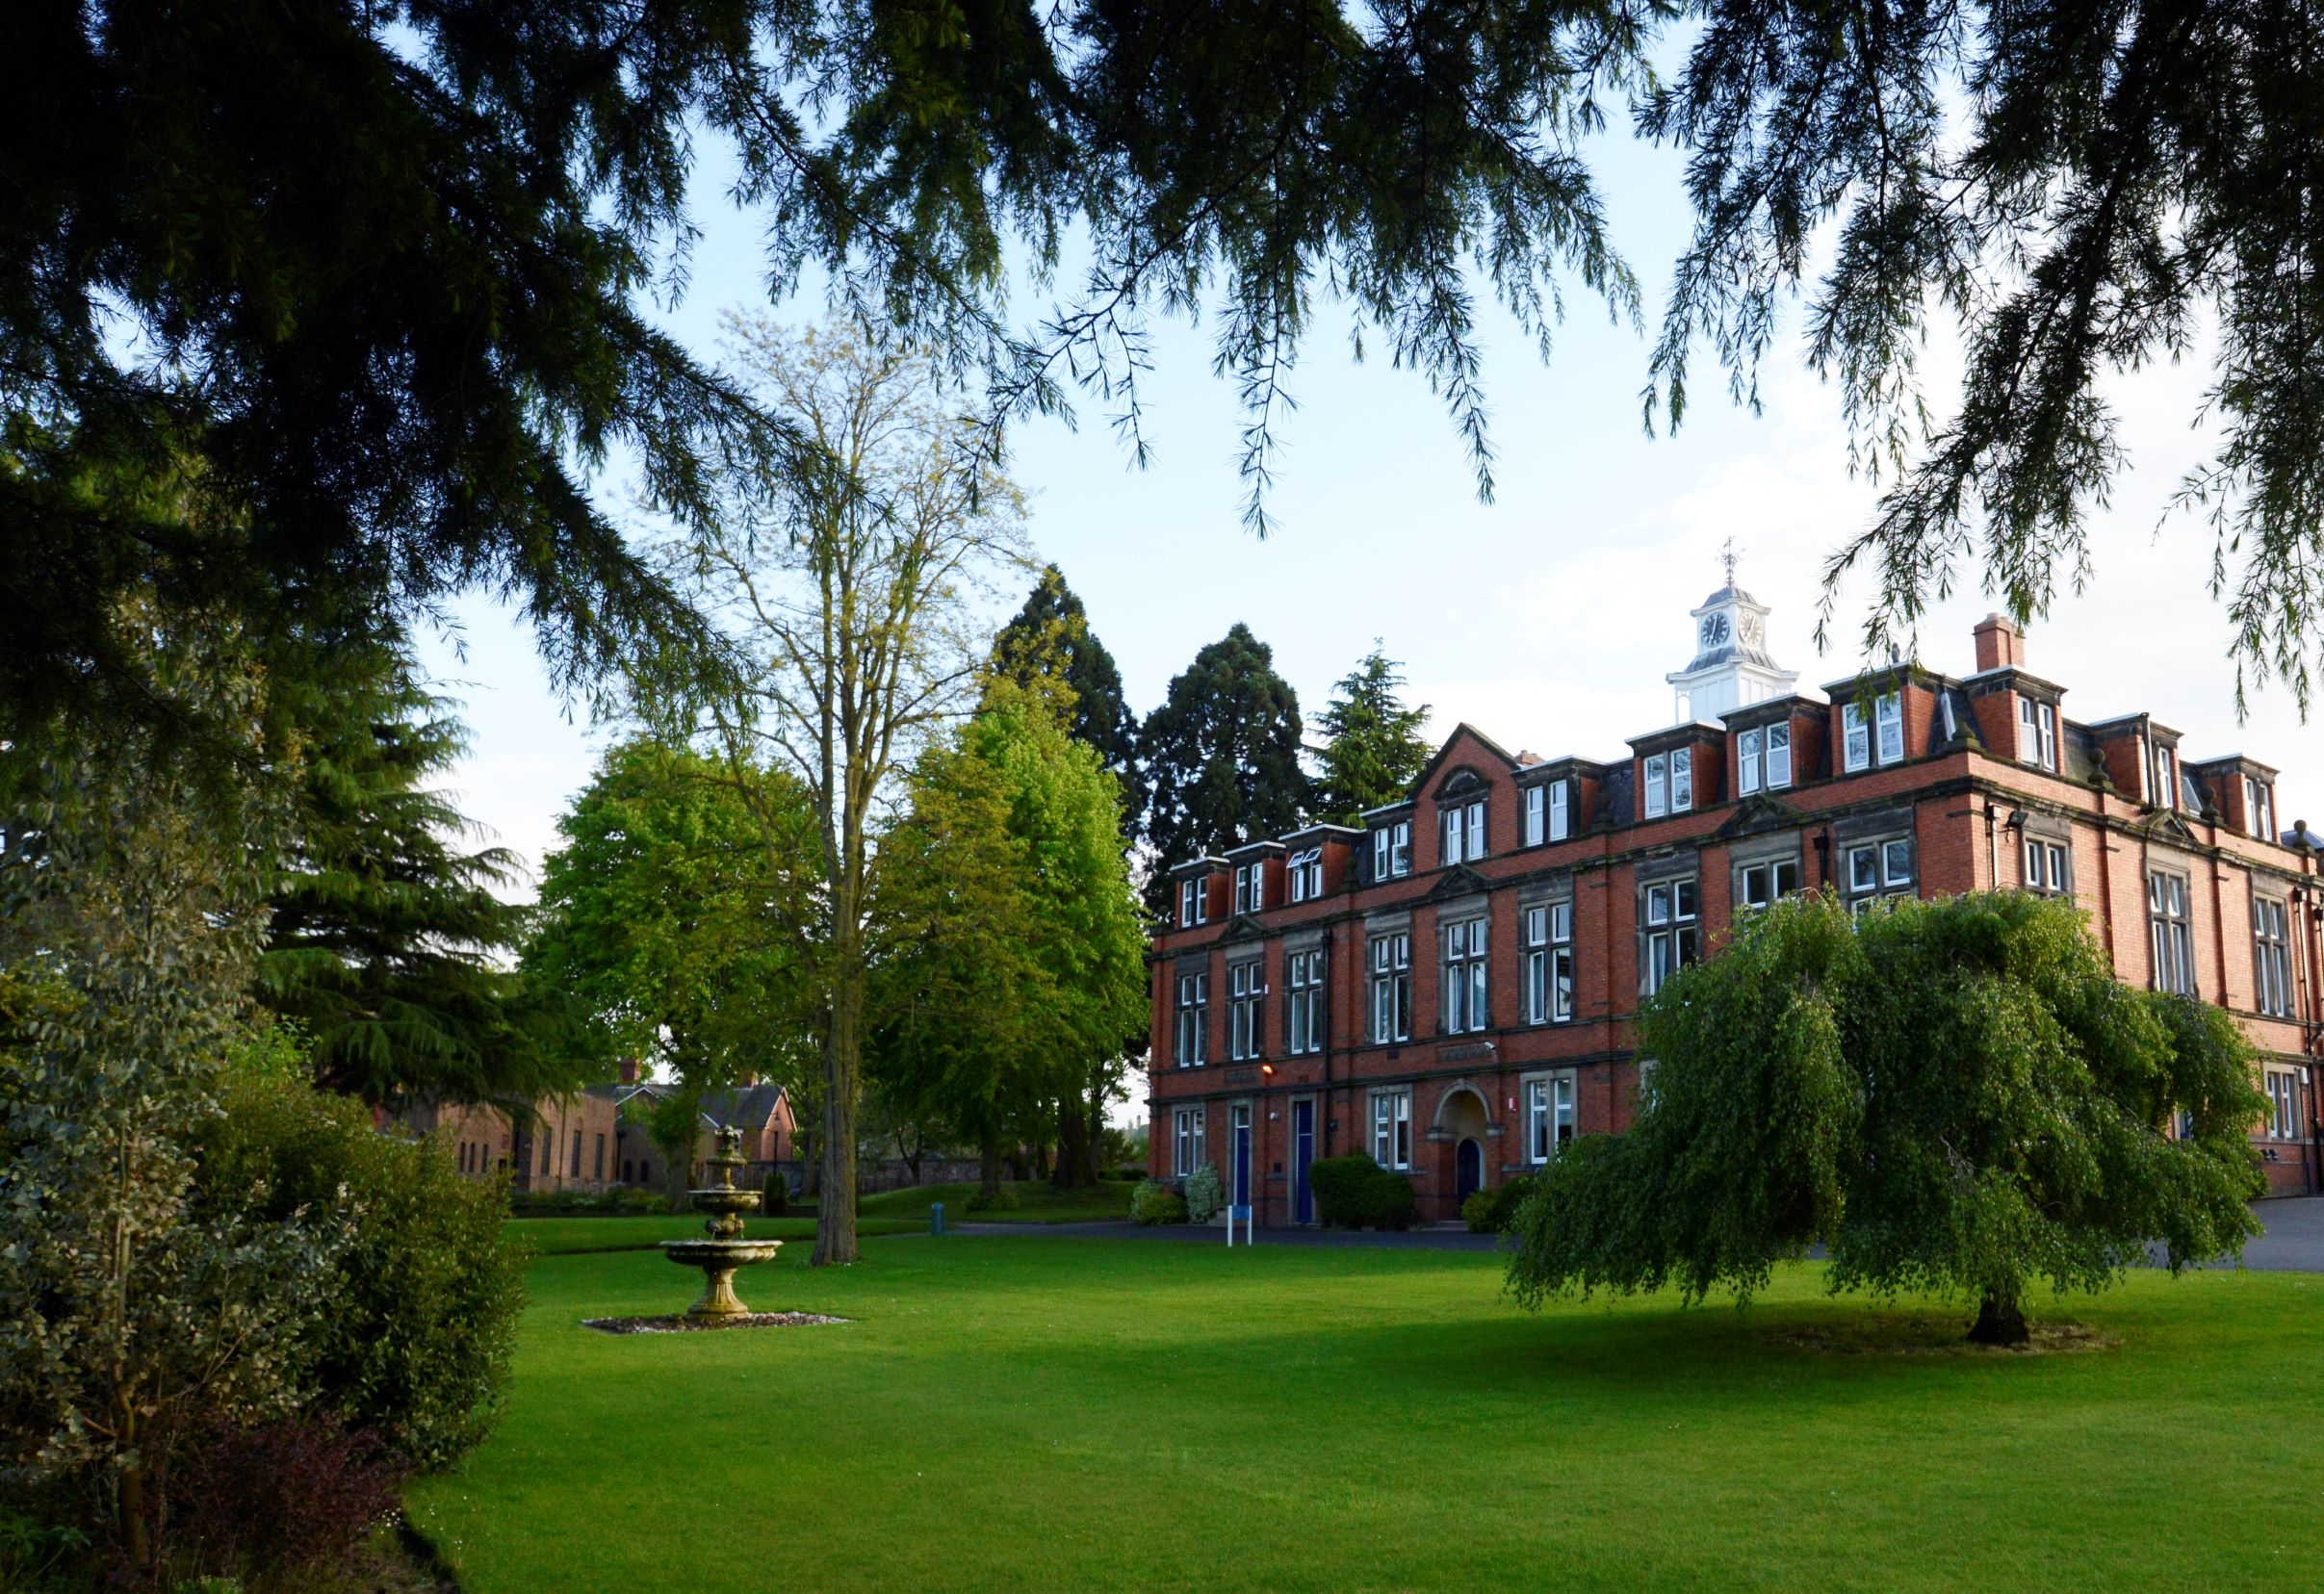 Holroyd Howe win the Catering and Cleaning contract at Wrekin College and The Old Hall School